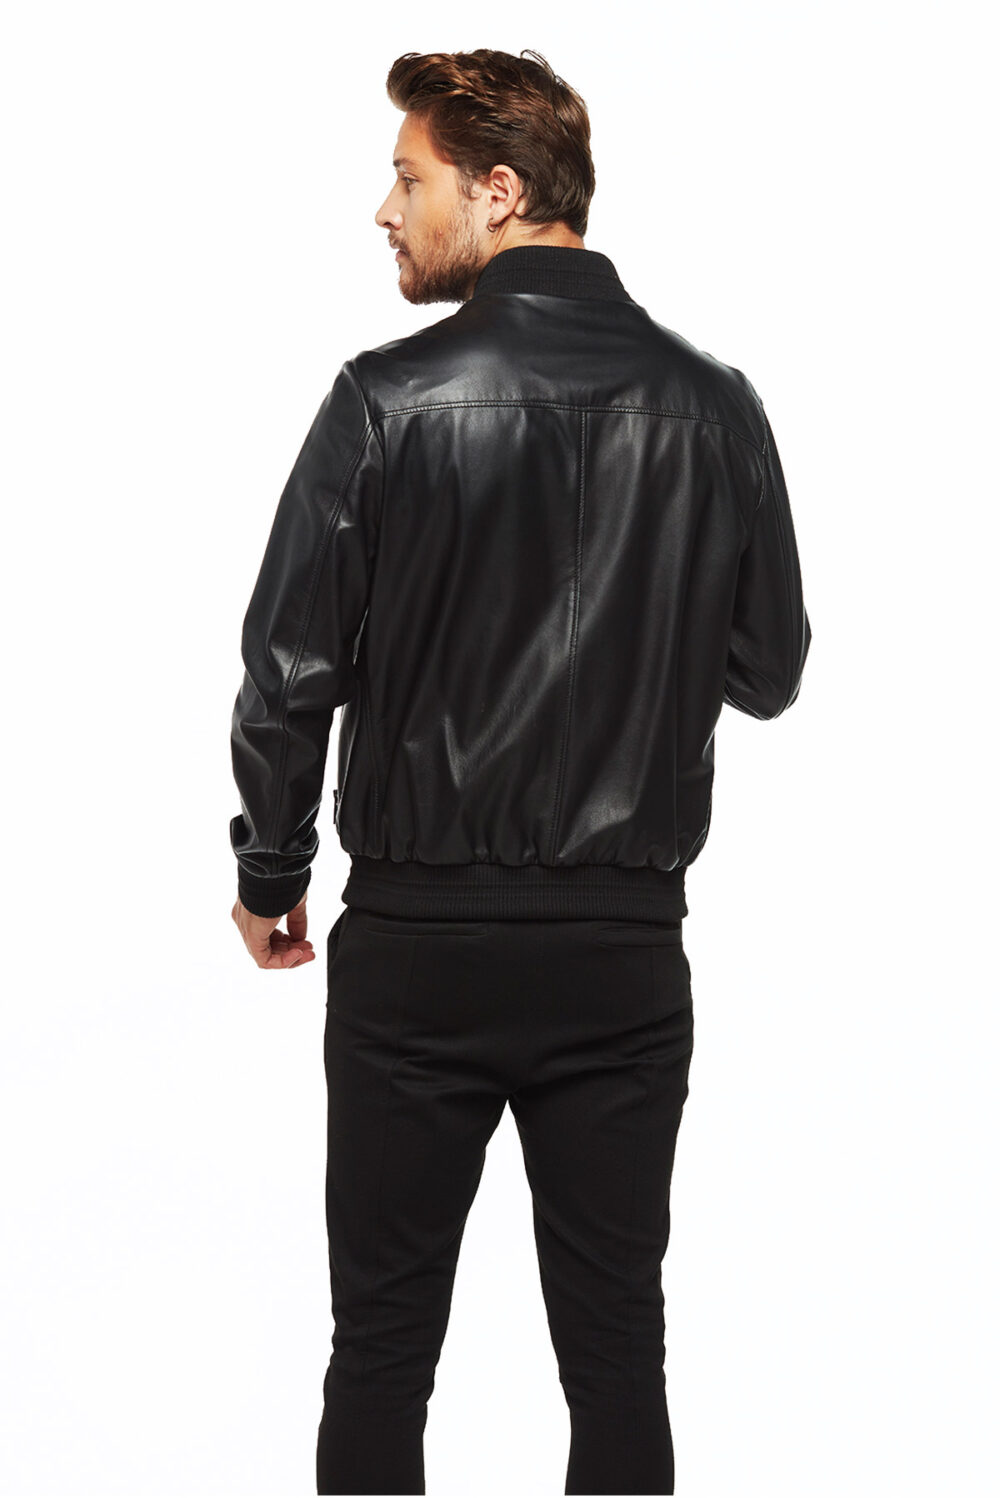 The Nerd Bomber Double Face Leather Jacket